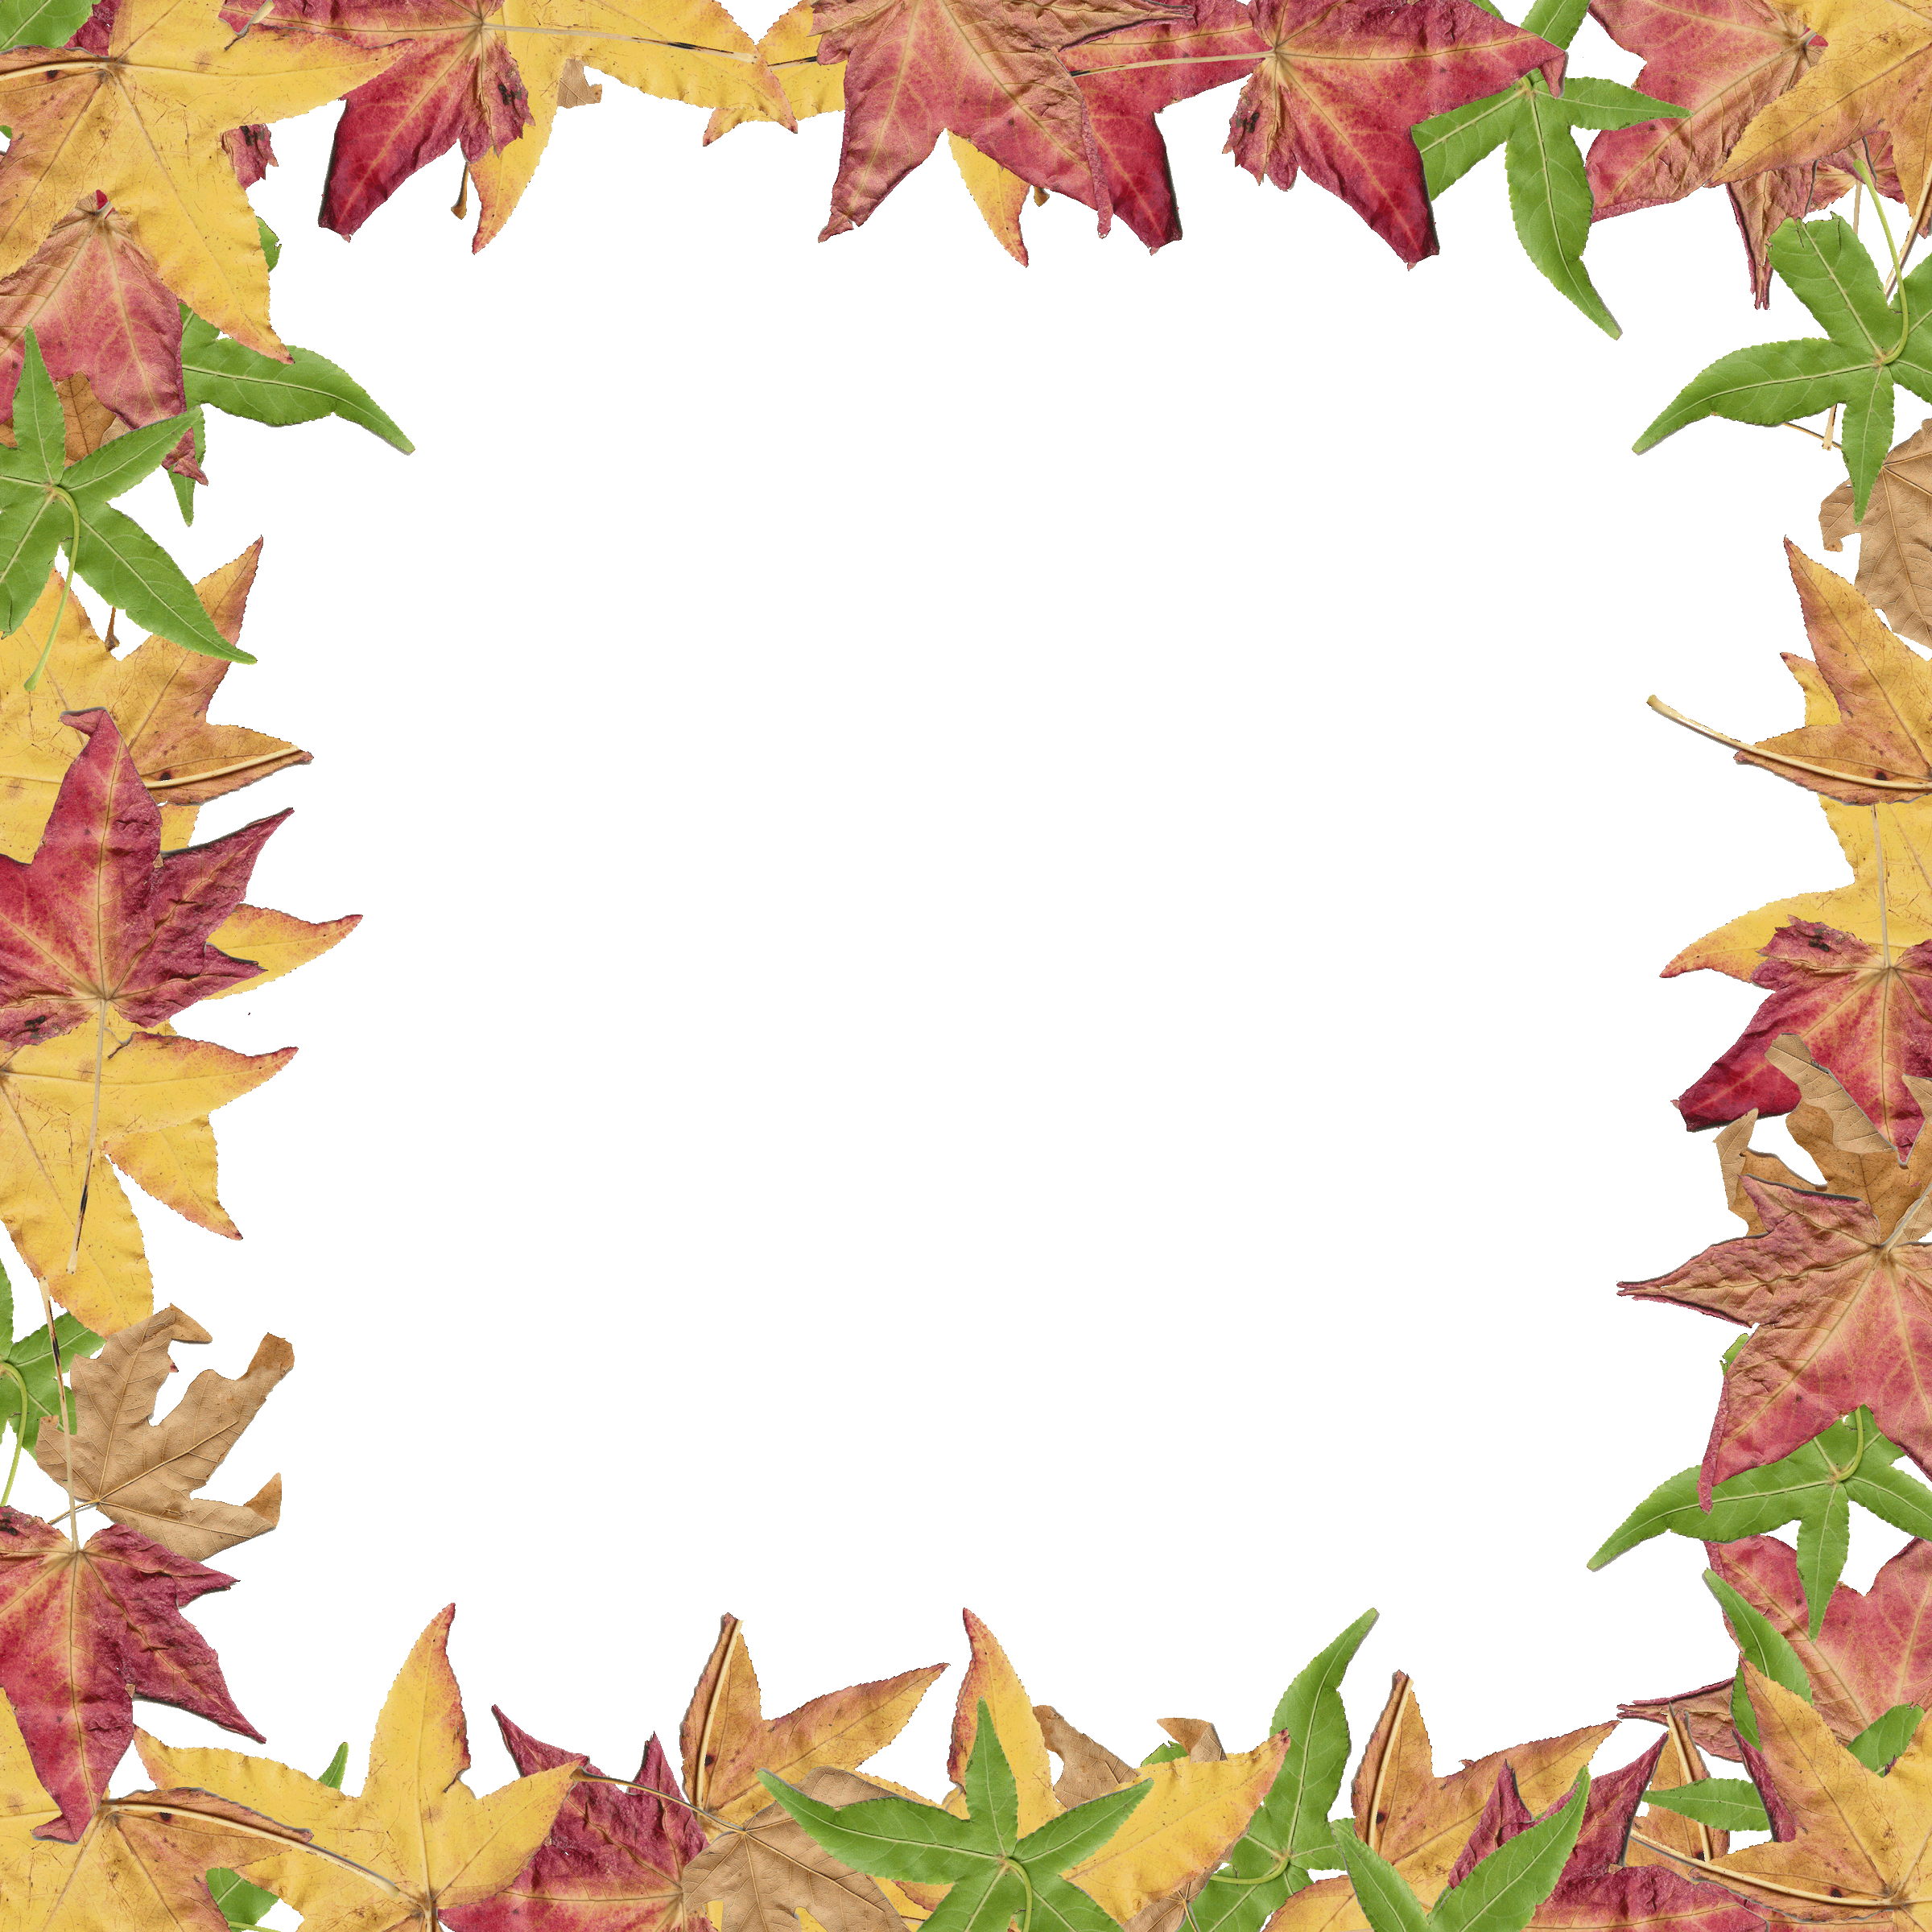 Fall Leaves Border Clipart - Free Clipart Images